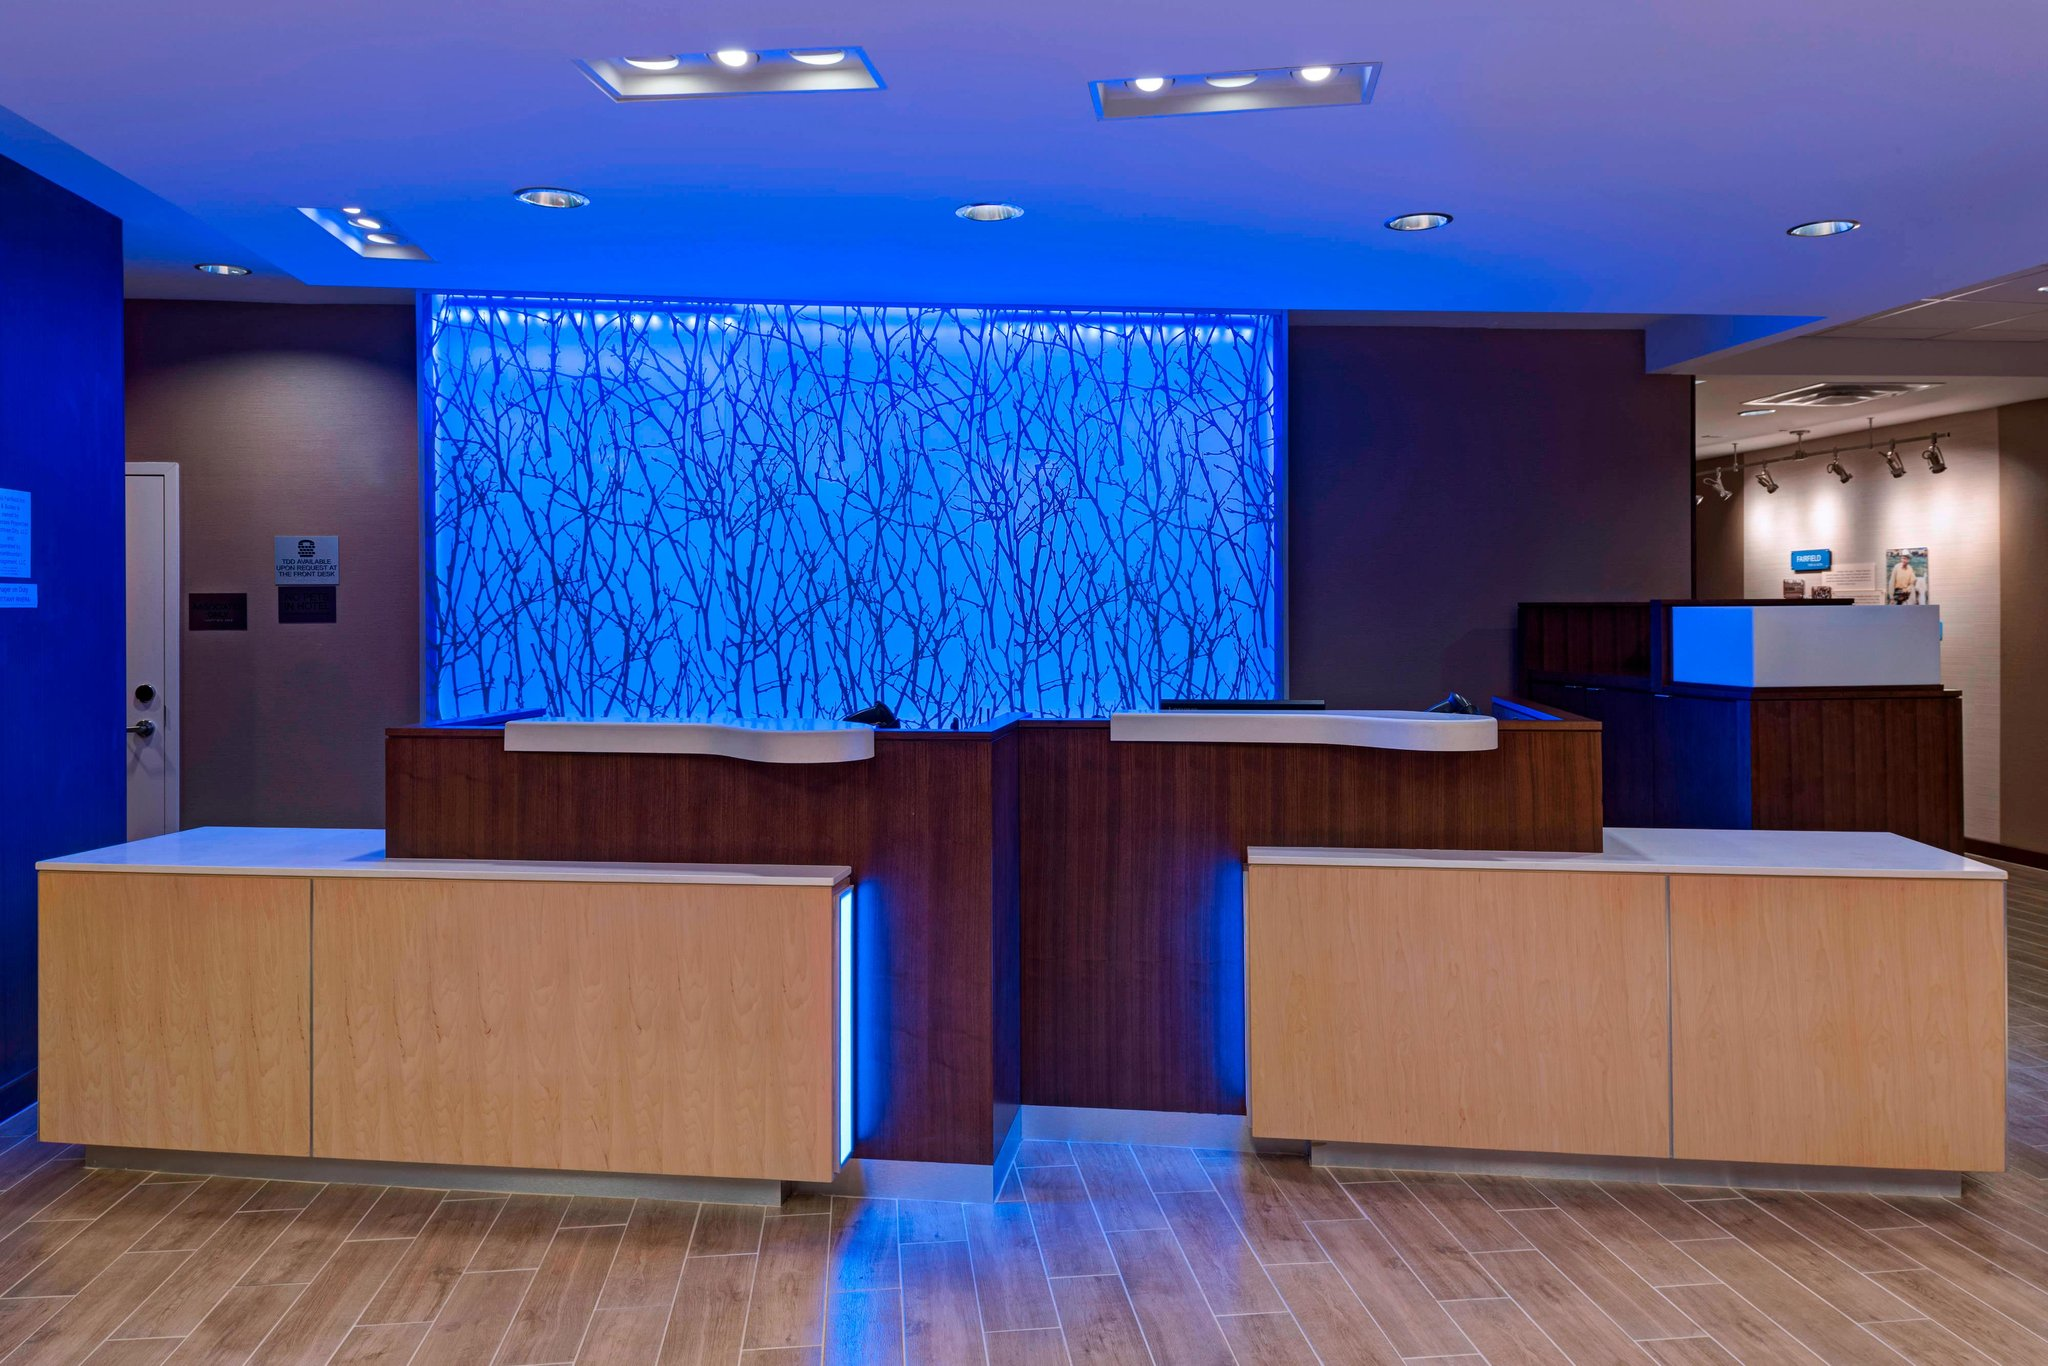 Fairfield Inn & Suites Atlanta Peachtree